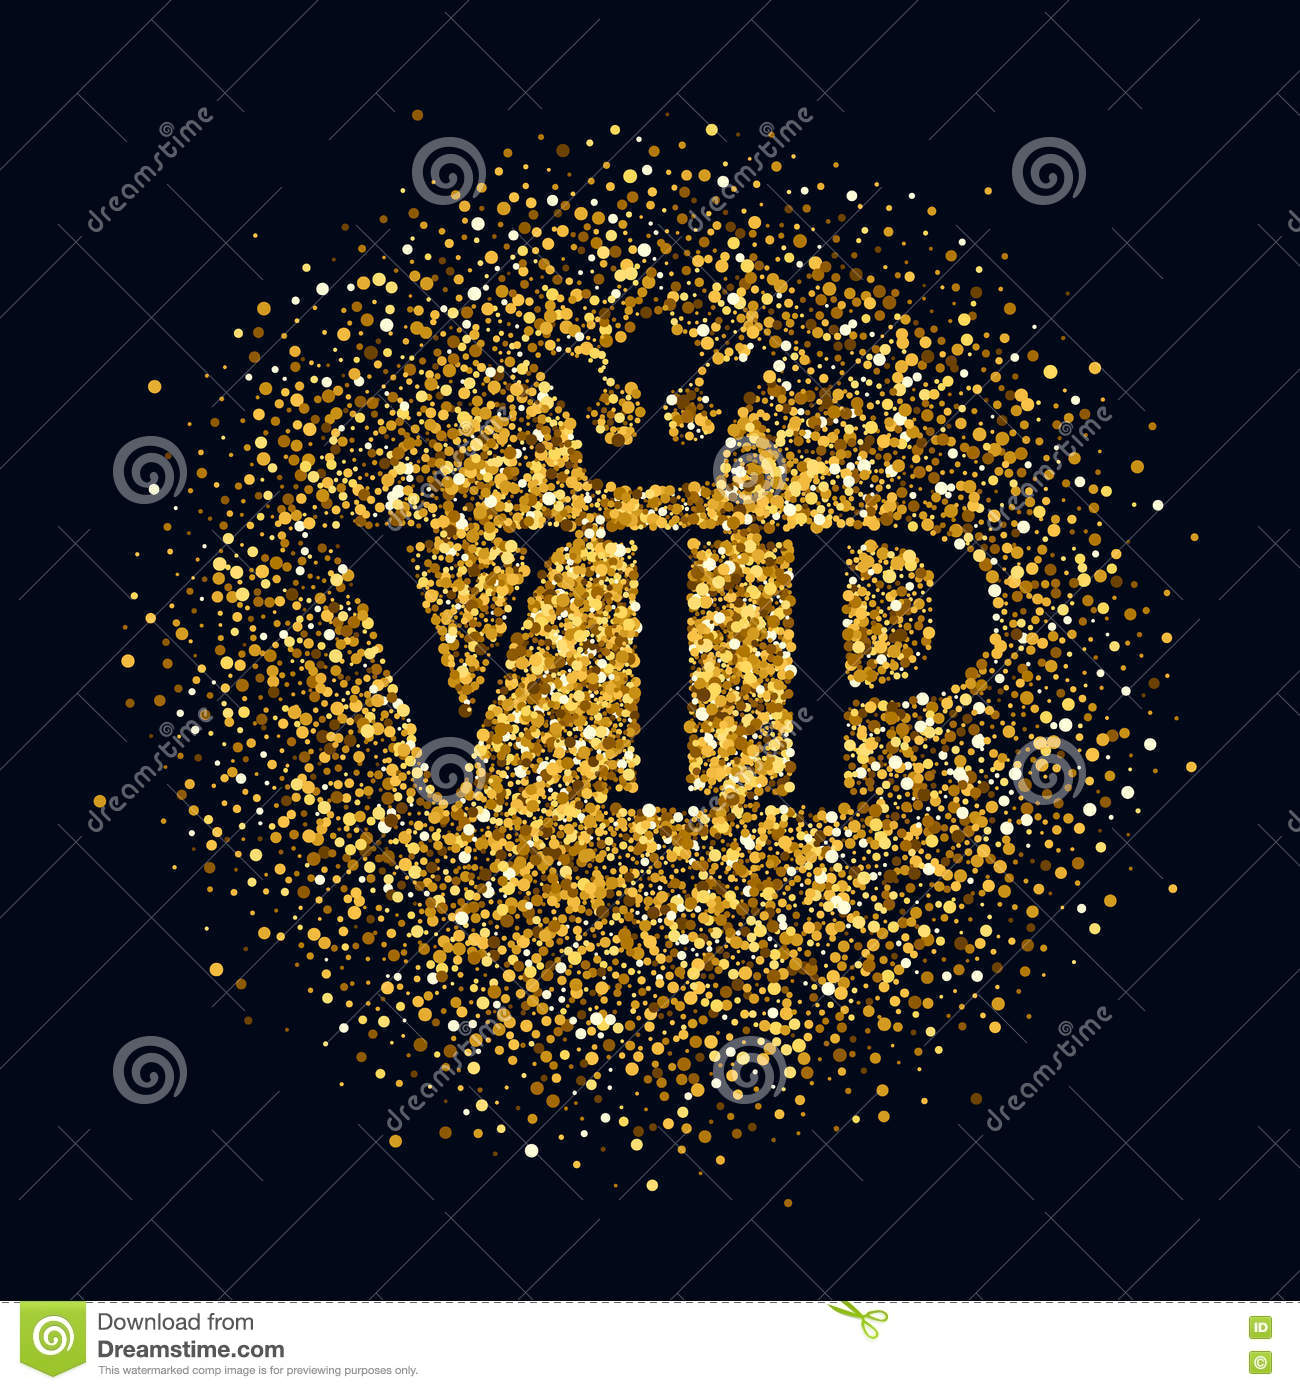 VIP Abstract Golden Glow Glitter Background. Stock Vector.